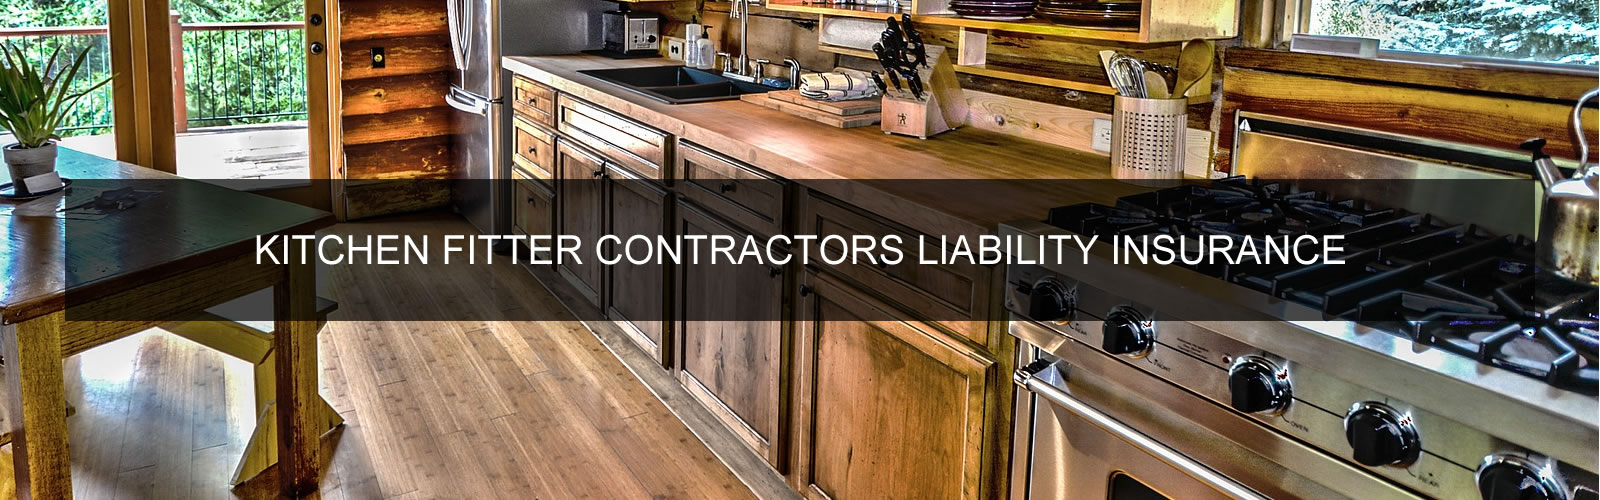 Kitchen Fitter Contractors Liability Insurance